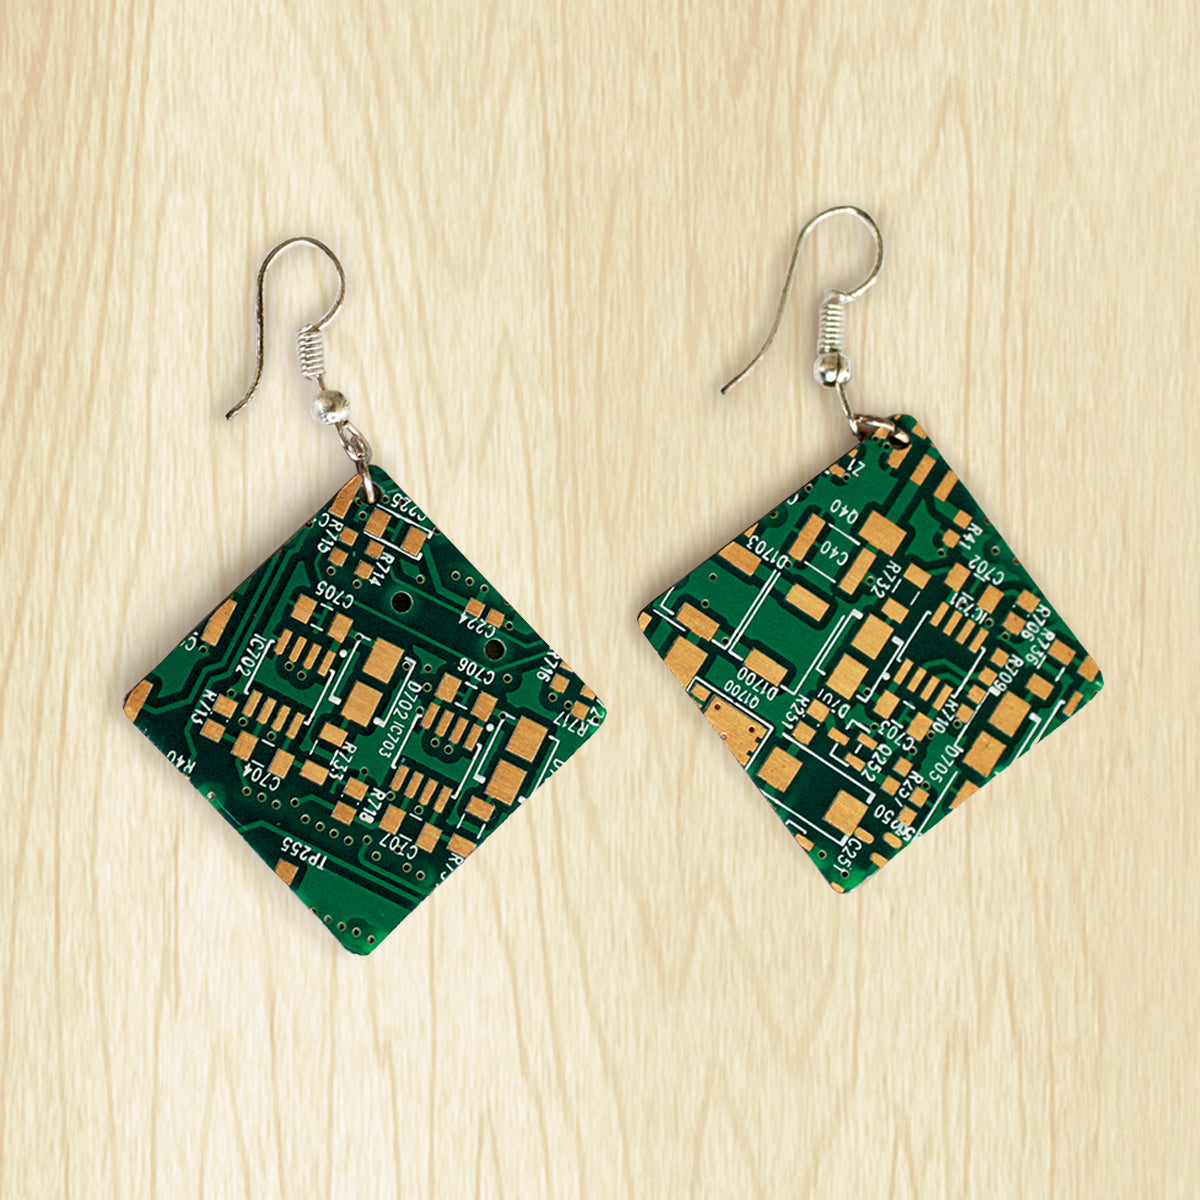 Circuit Board Square Earrings | Seeds for Kindness | Upcycled, Repurposed, Reimagined